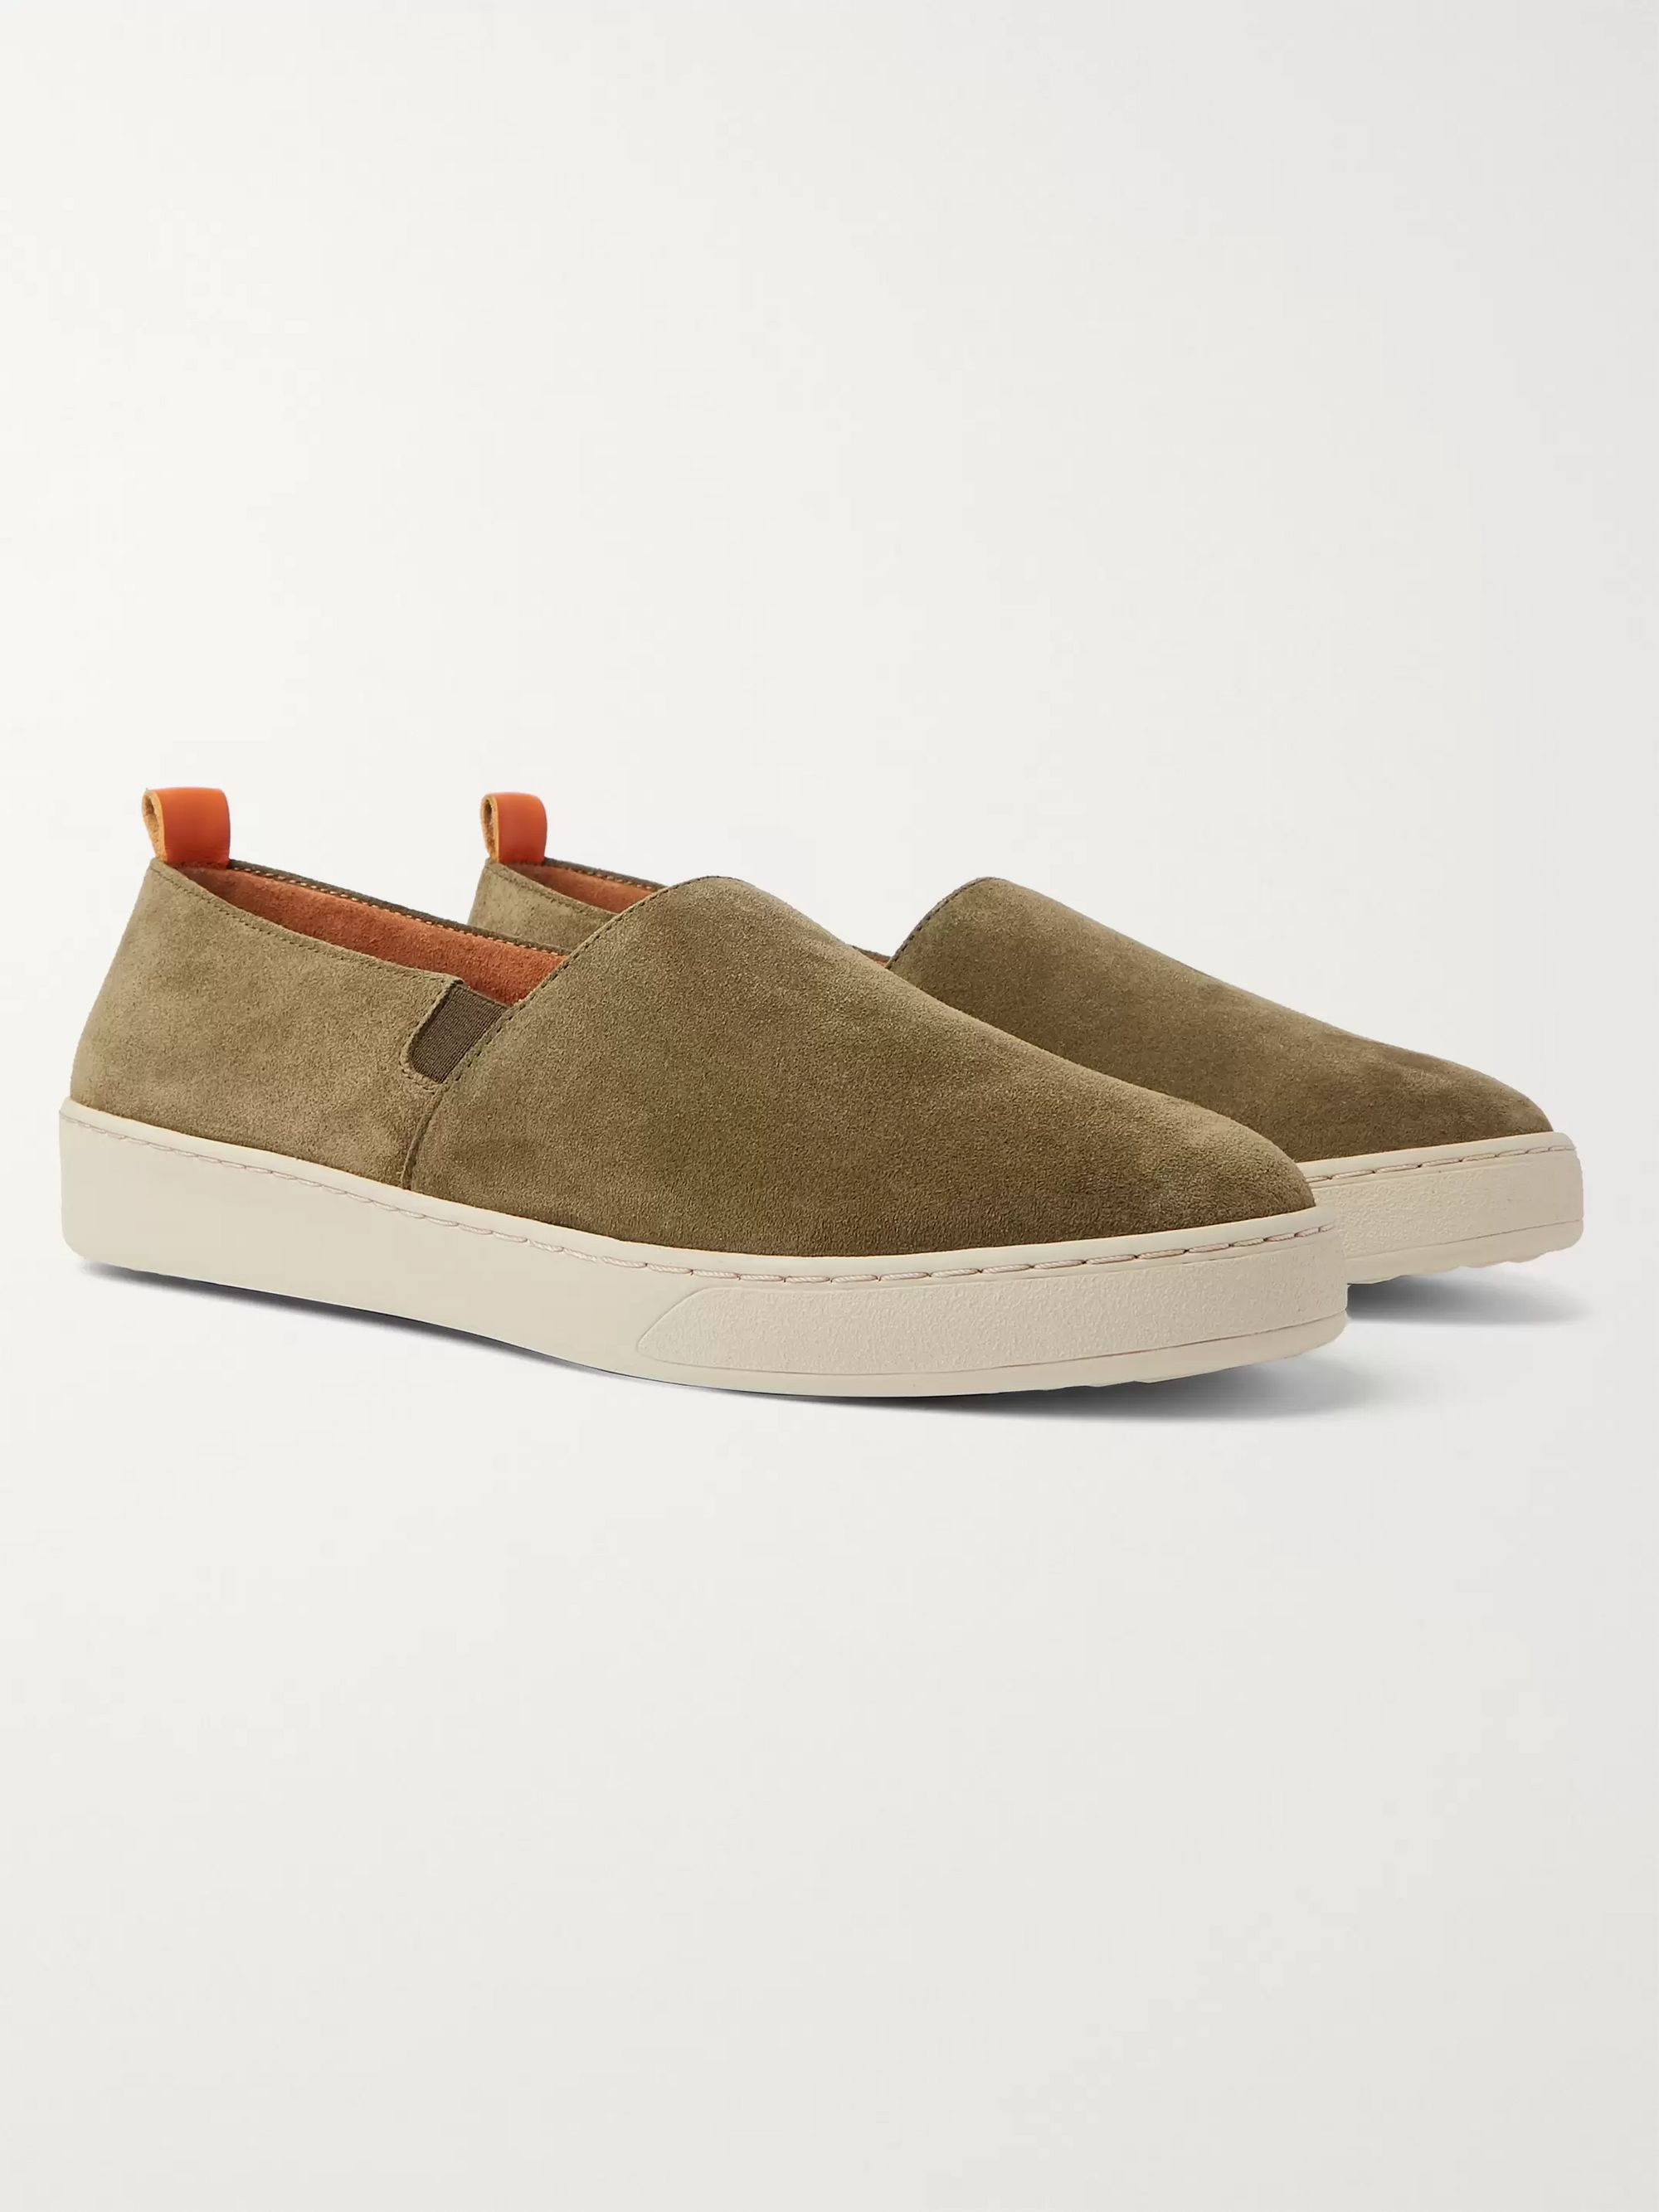 Army Green Suede Slip-on Sneakers | Mulo